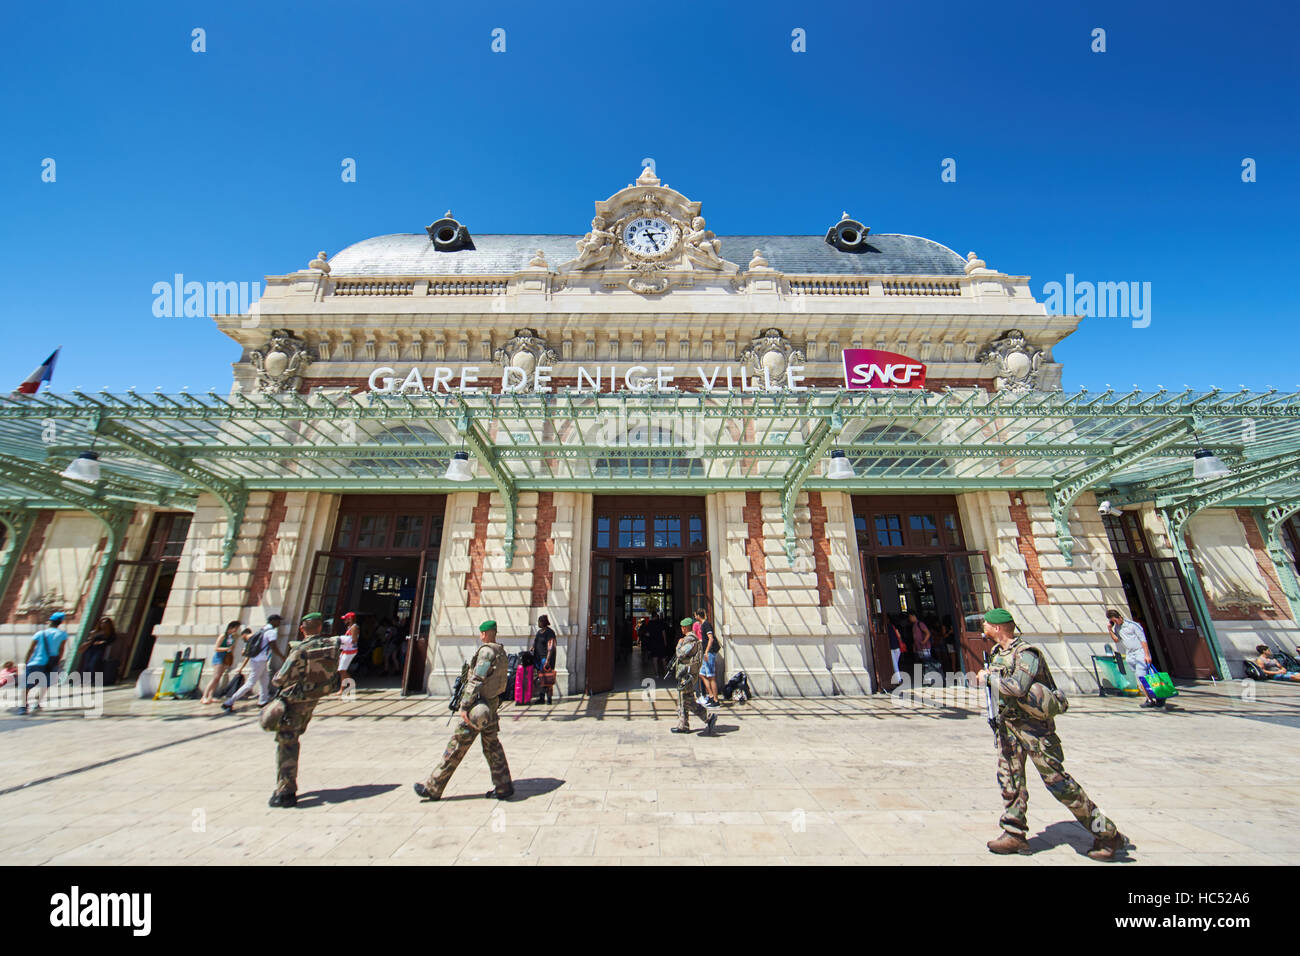 The French hired military patrol strategic important object railway station in the center, sunny day, blue sky, - Stock Image